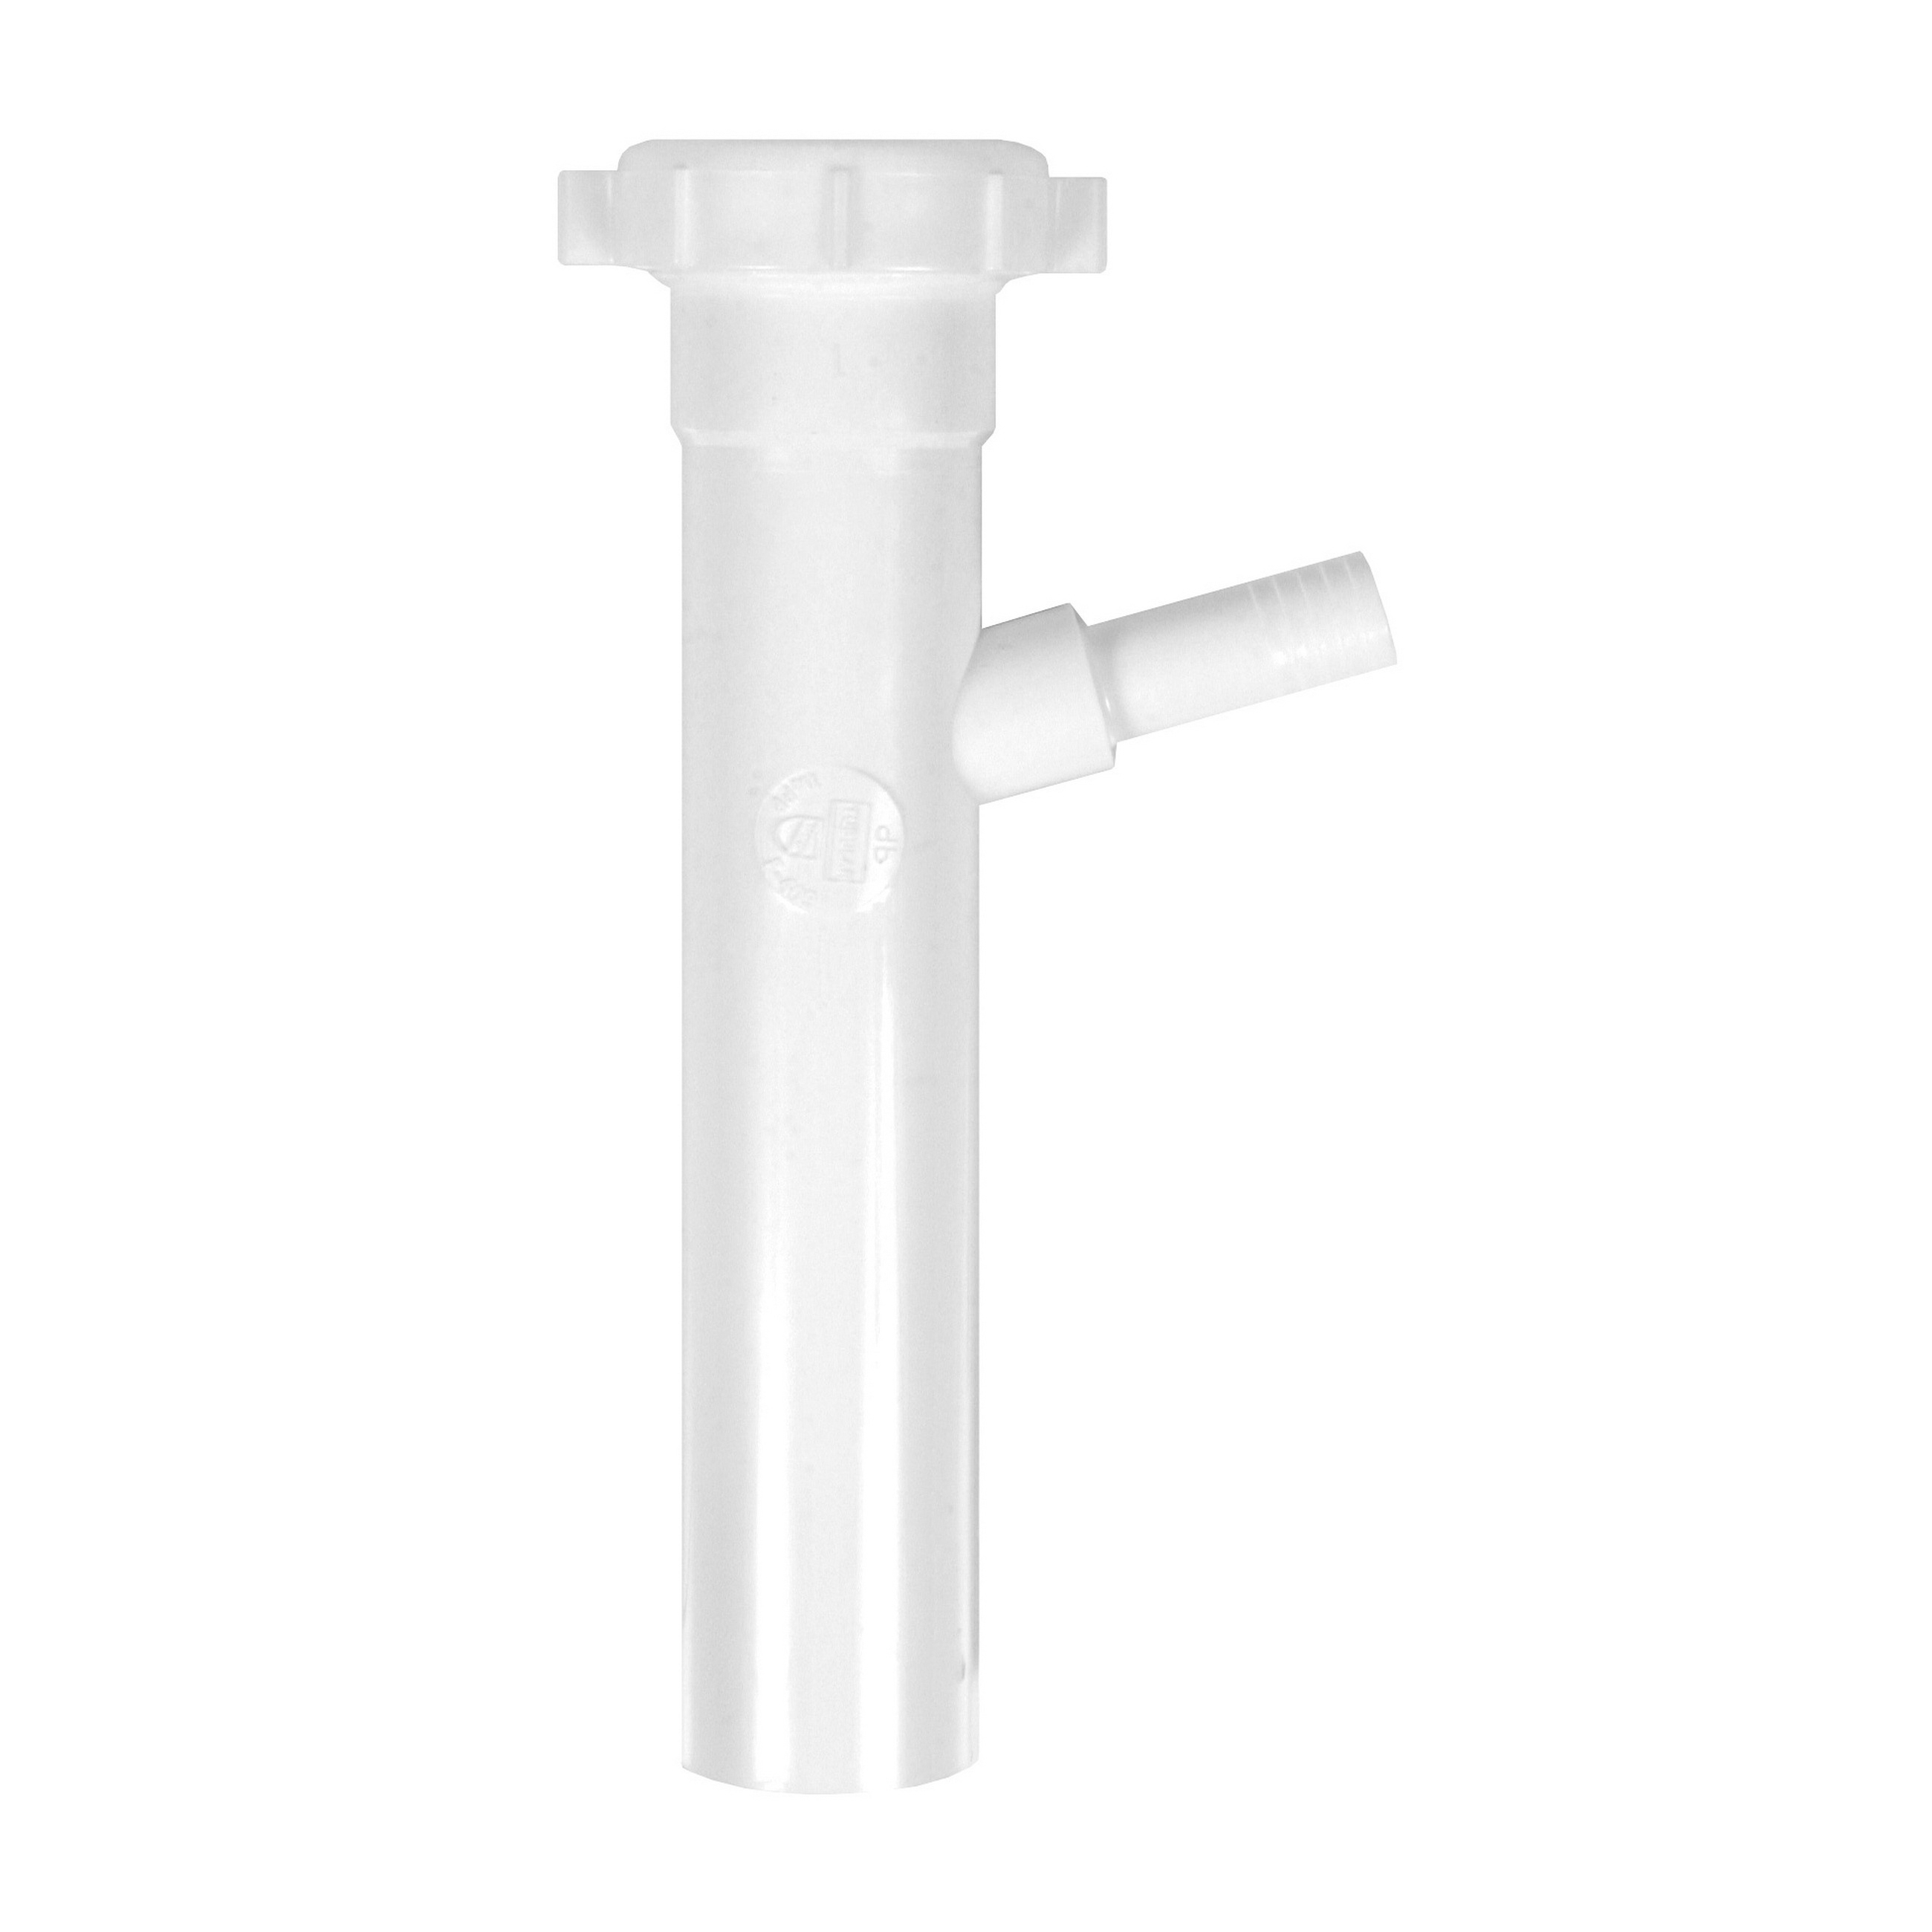 Dearborn® PP9816 Tubular Branch Tailpiece, 1-1/2 in Pipe, 8 in L, Slip Joint Connection, Polypropylene Plastic, Import